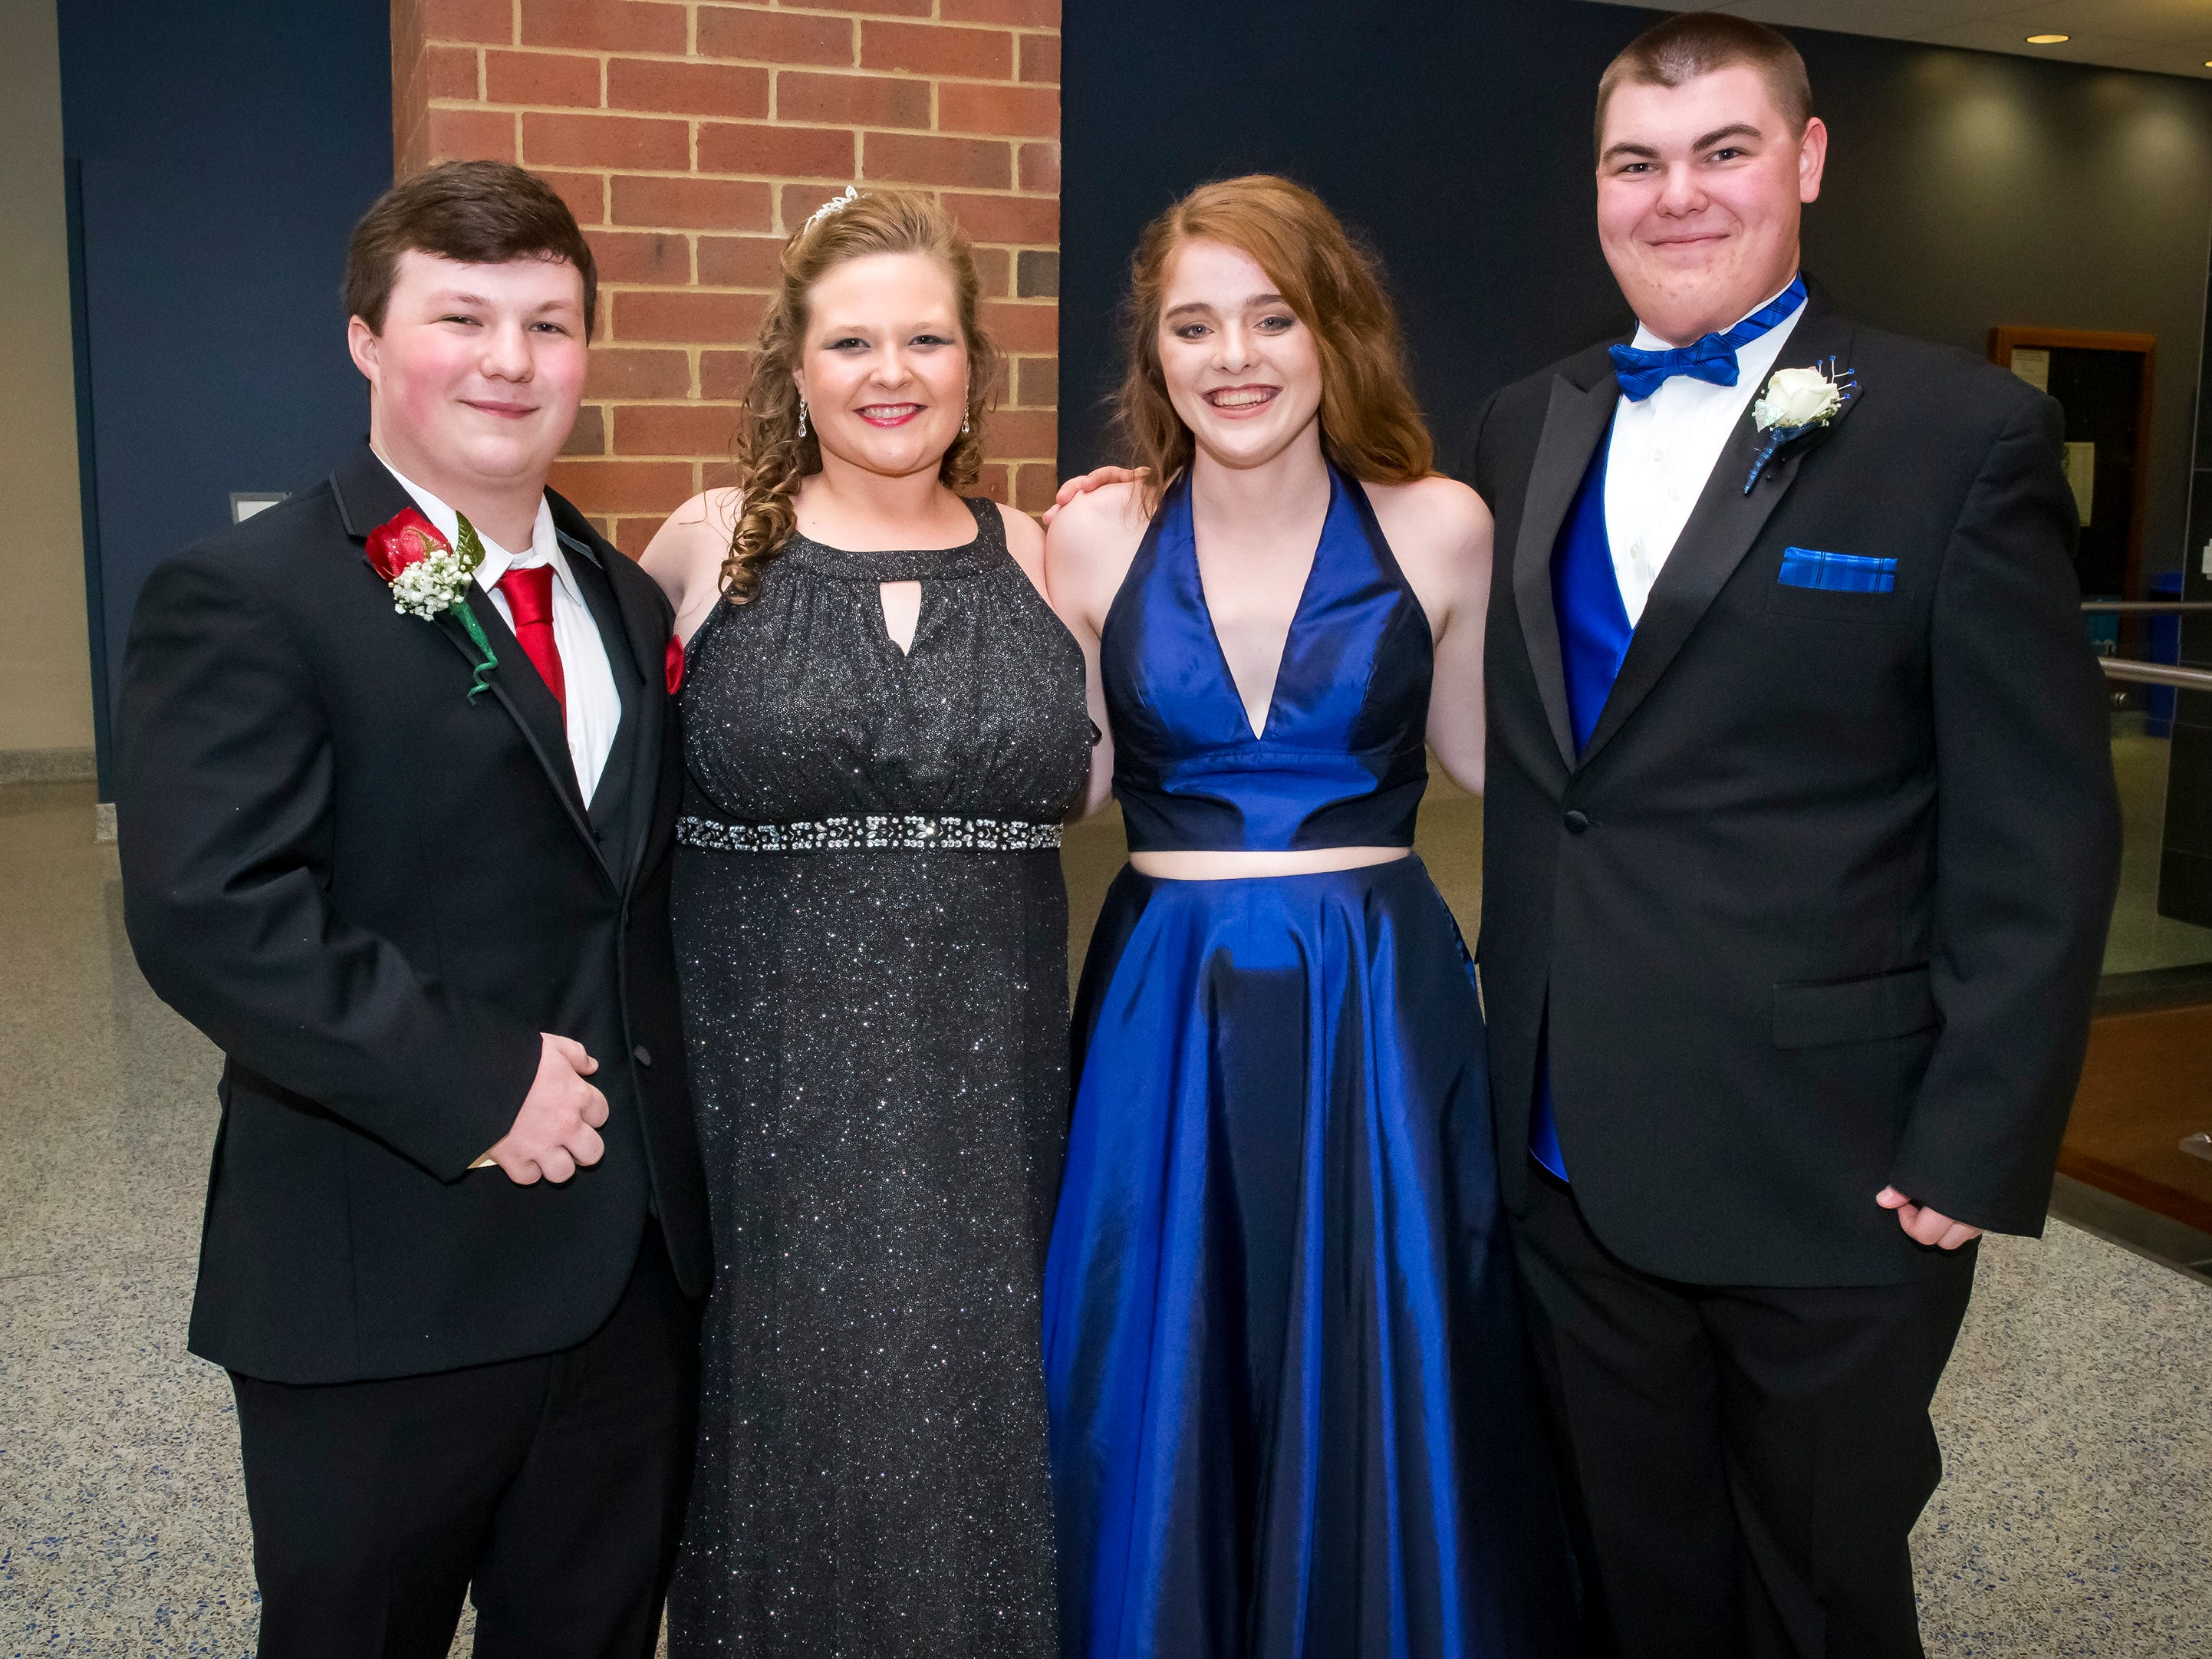 James Marshall, Brittany Milligen, Bethiany Freer and Claeb Smith arrive at Siegel High School prom at MTSU, Saturday, April 13, 2019.